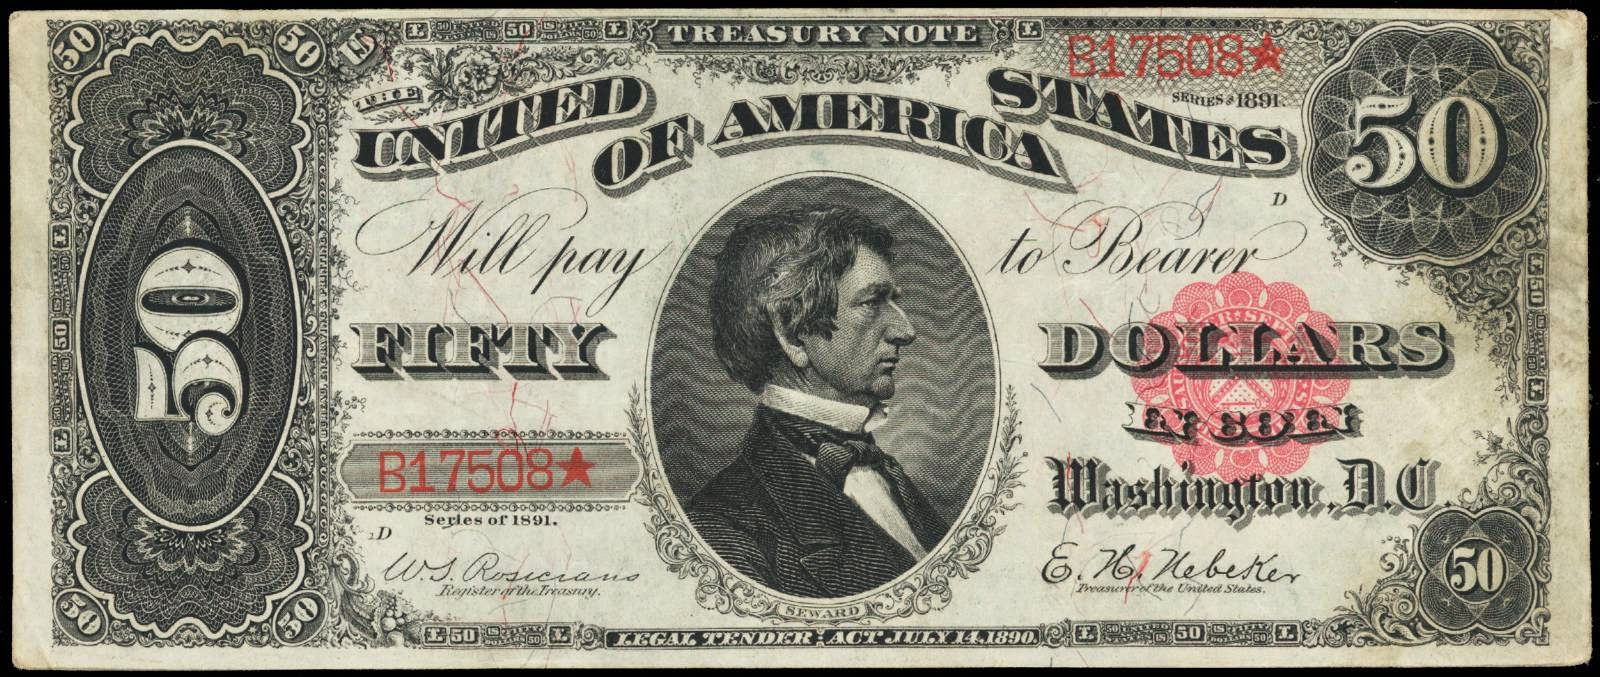 1891 50 Dollar Treasury or Coin Note William H. Seward